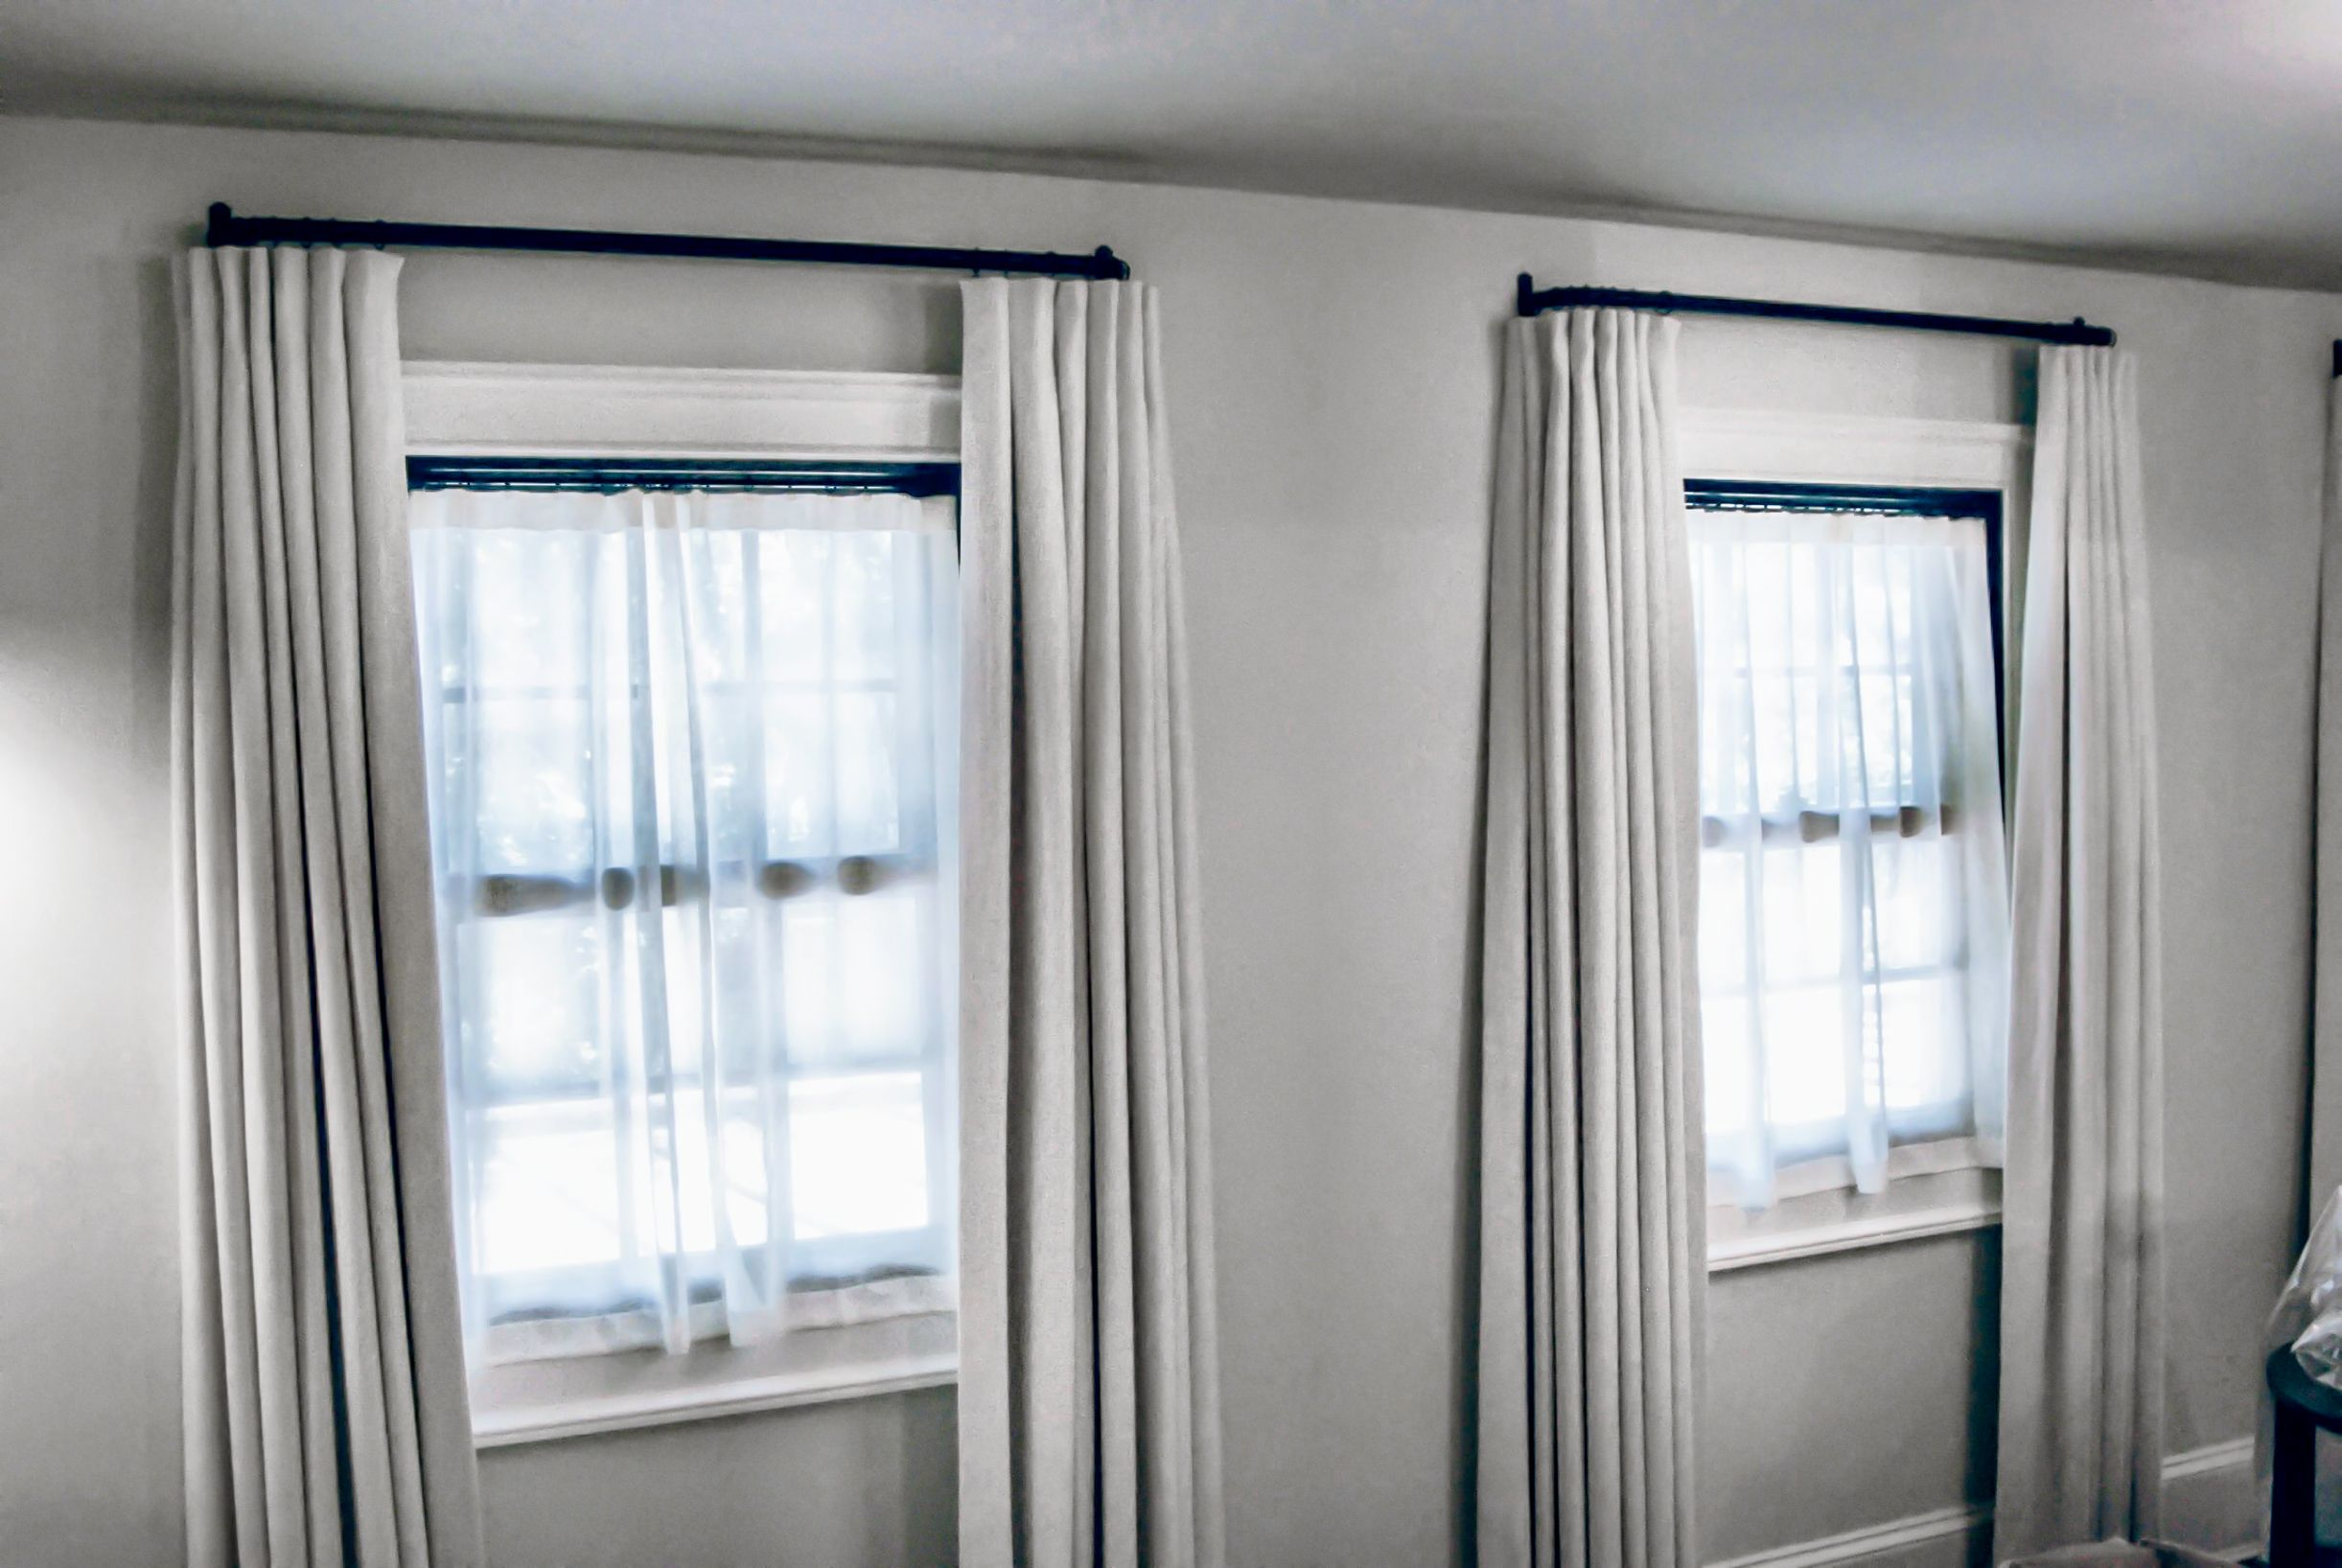 drapes crossword clue bedroomheavy valanceheavy curtains with of inspirations images inch and for curtain full insulation size stirring heavy